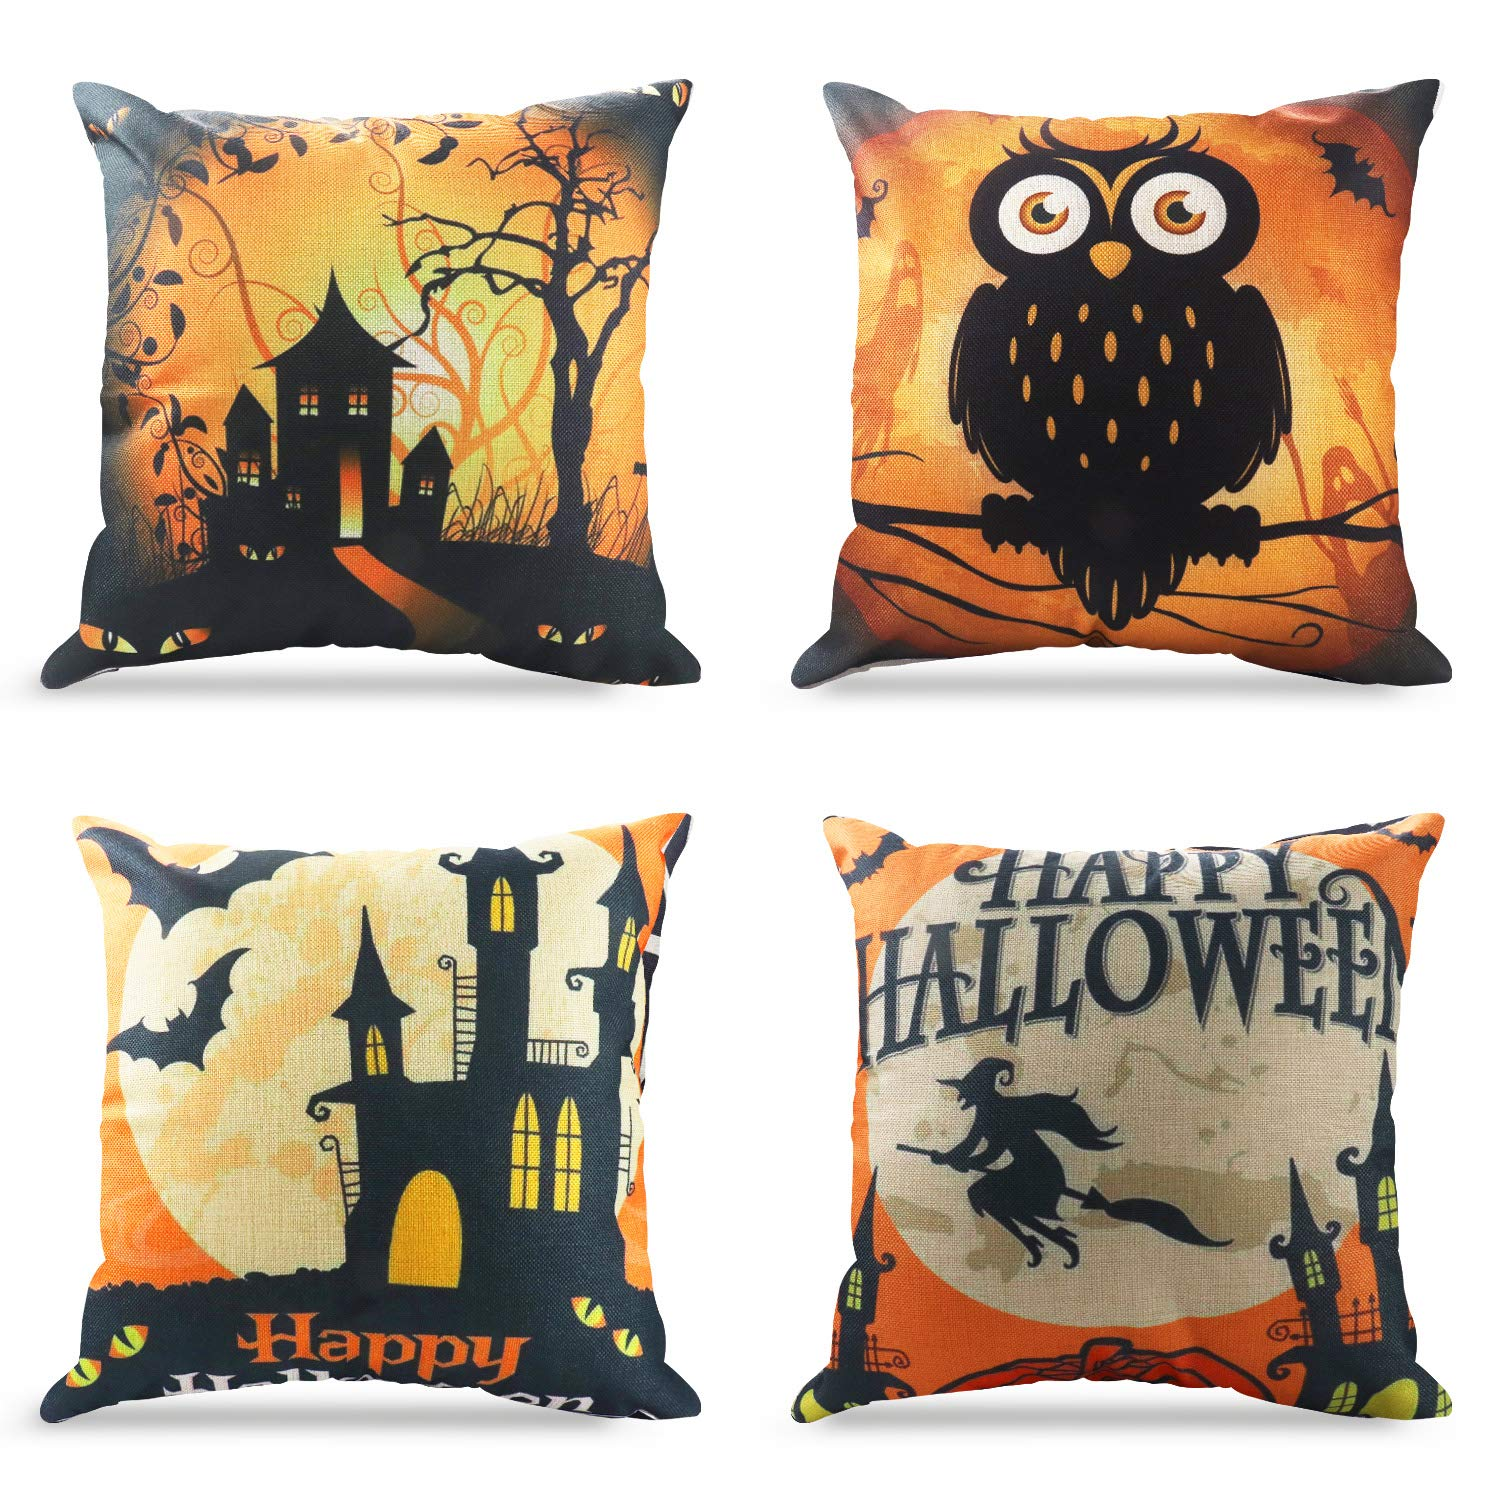 Happy Halloween Throw Pillow Covers 18 x 18 Inch Owl/Bat/Witch/Castle Theme Sofa Home Decorative Cotton Linen Cushion Covers Set of 4